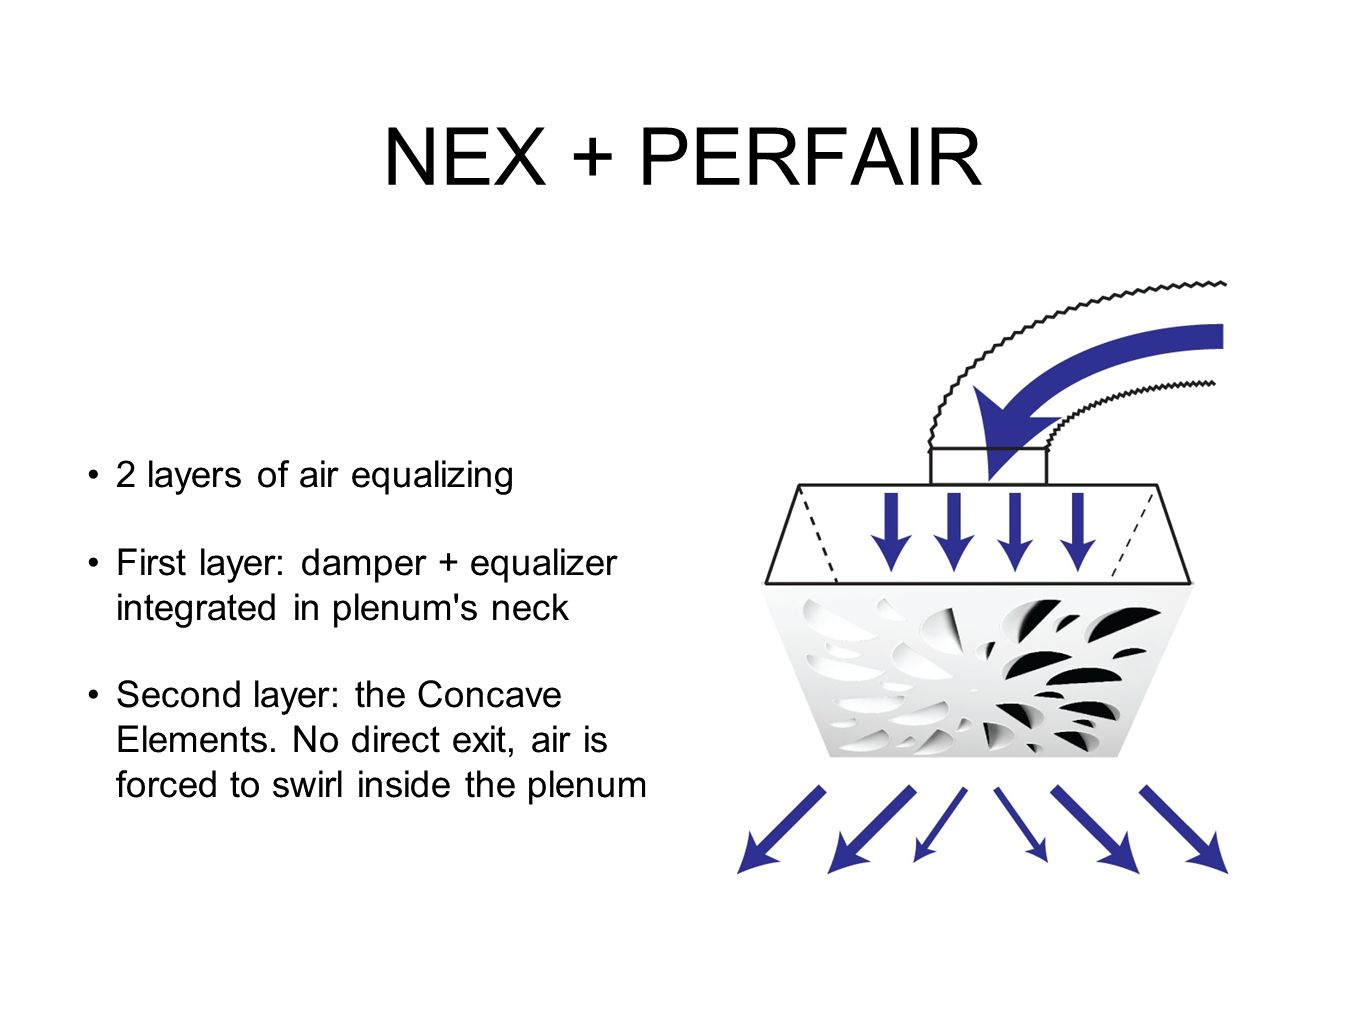 NEX + PERFAIR 2 layers of air equalizing First layer: damper + equalizer integrated in plenum s neck Second layer: the Concave Elements.